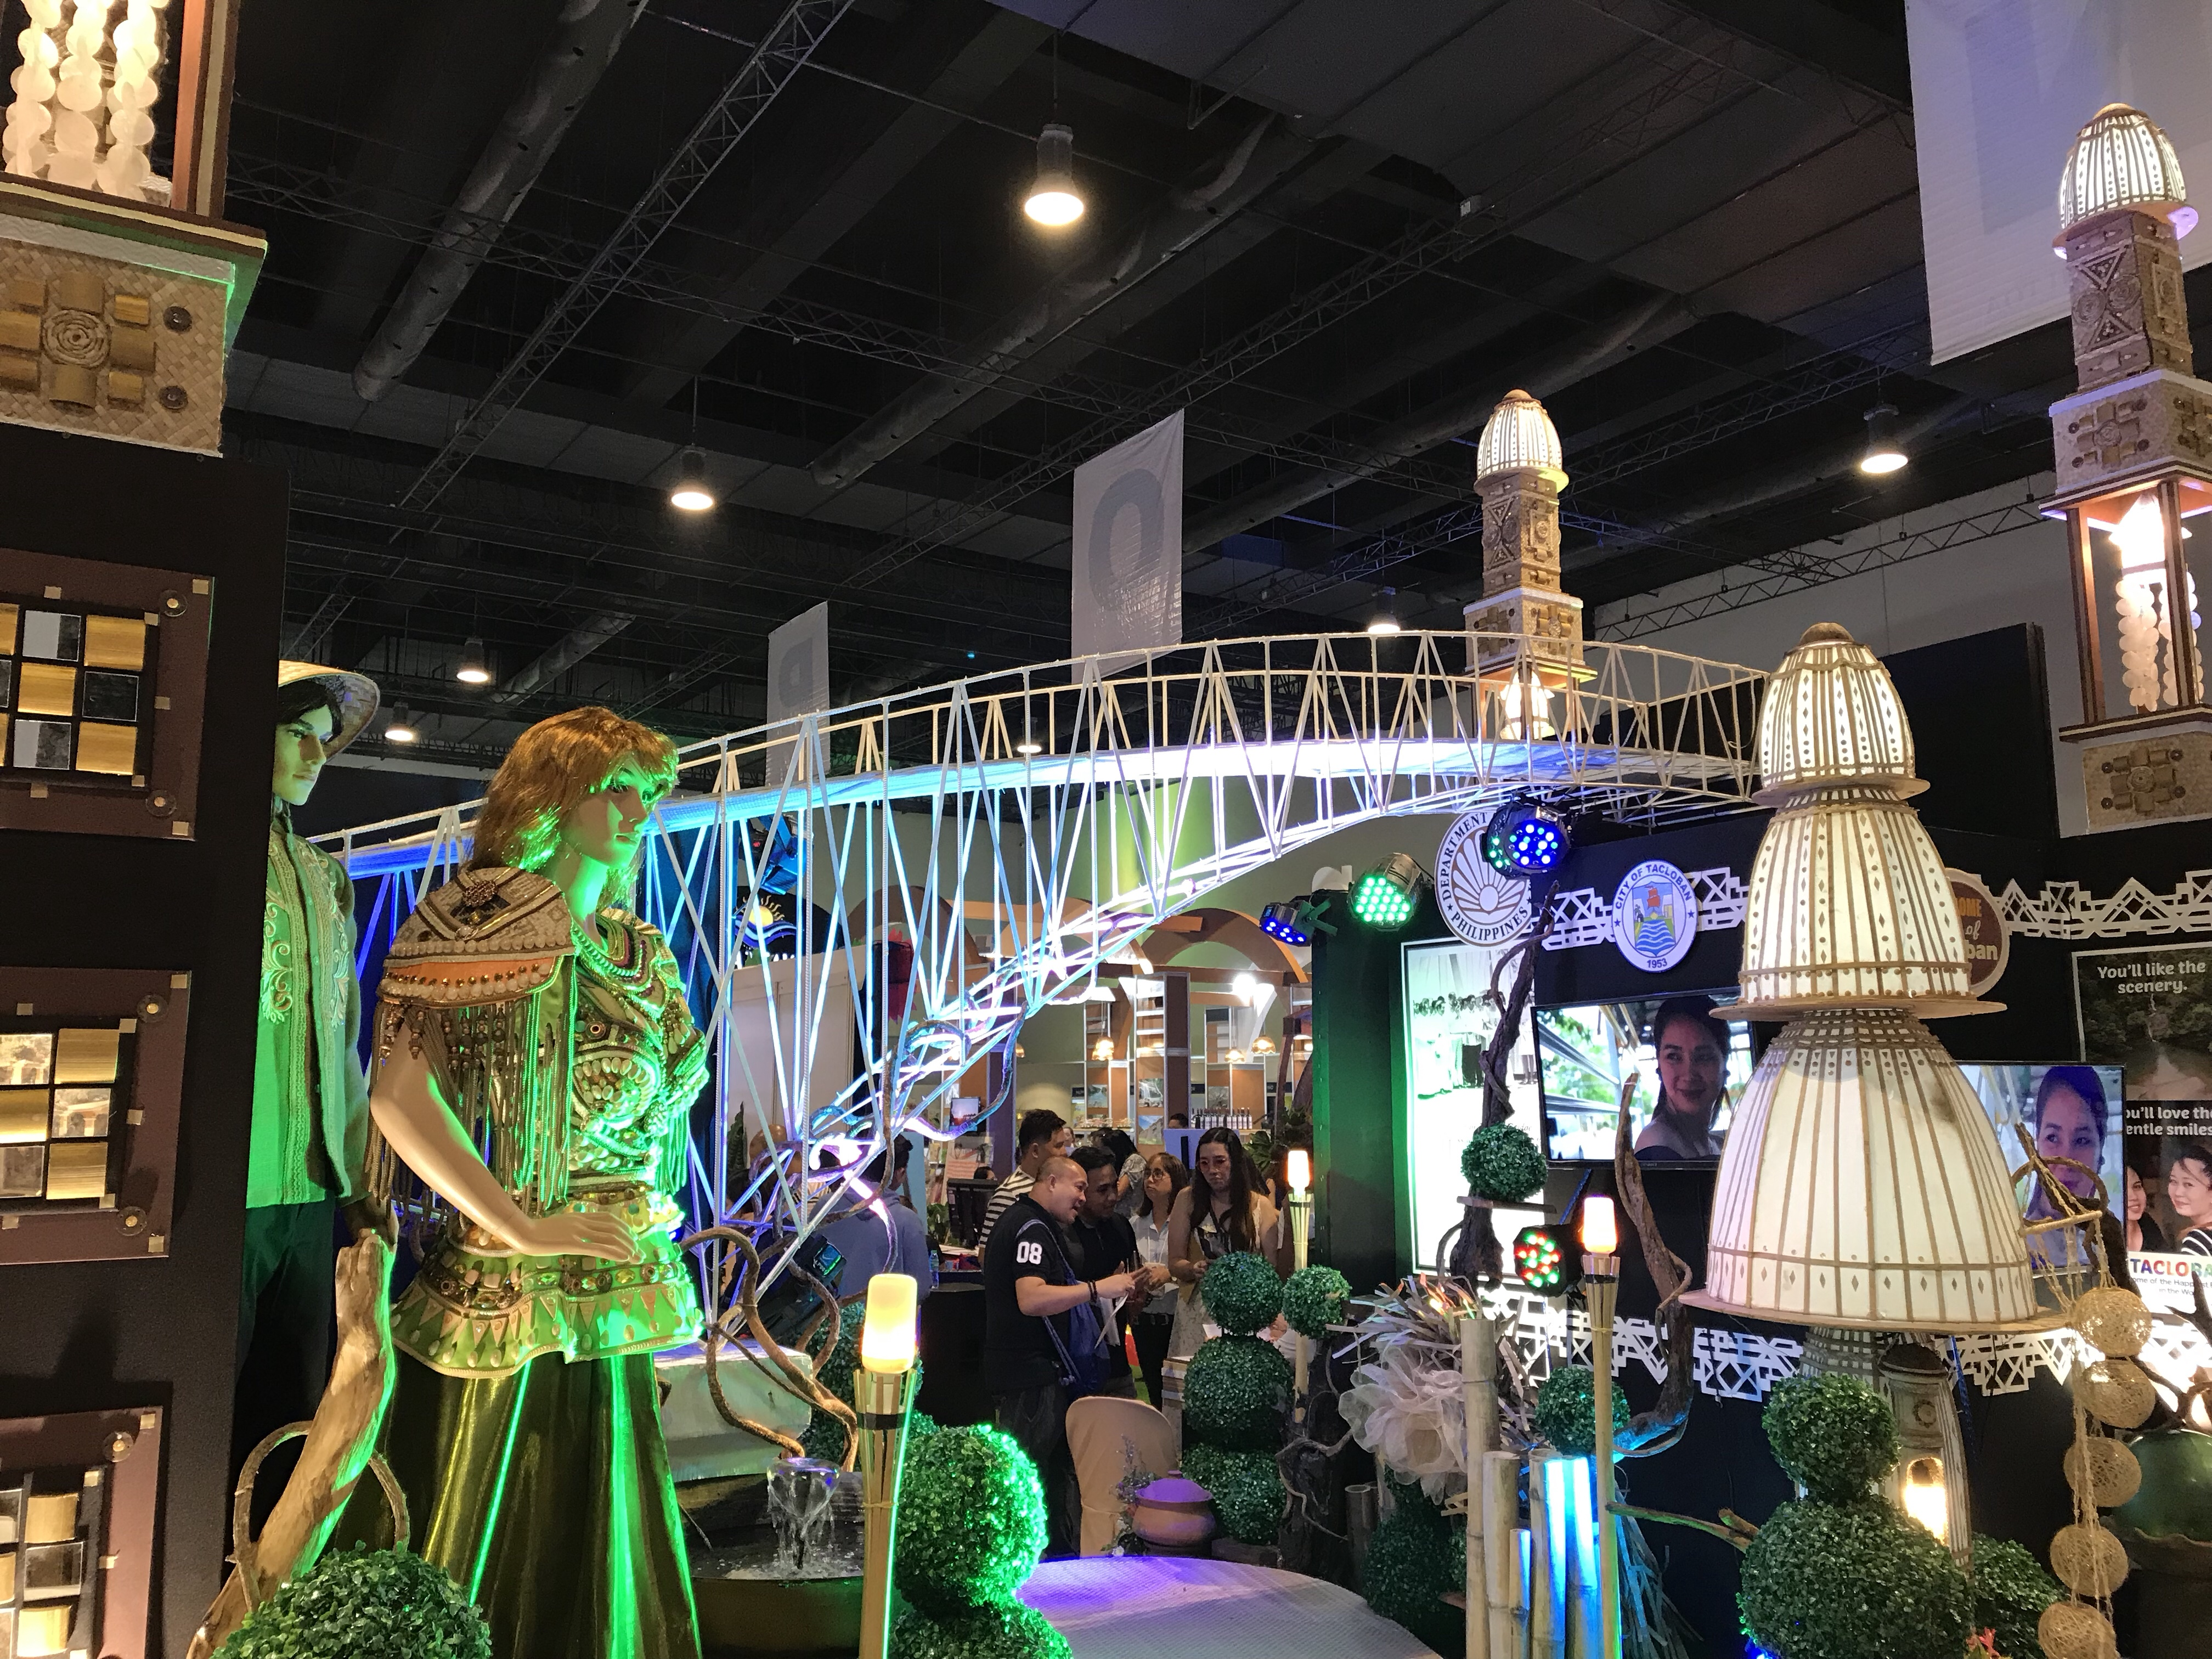 Let's buy trip packages - 20th Philippine Travel Mart at SMX Convention Center